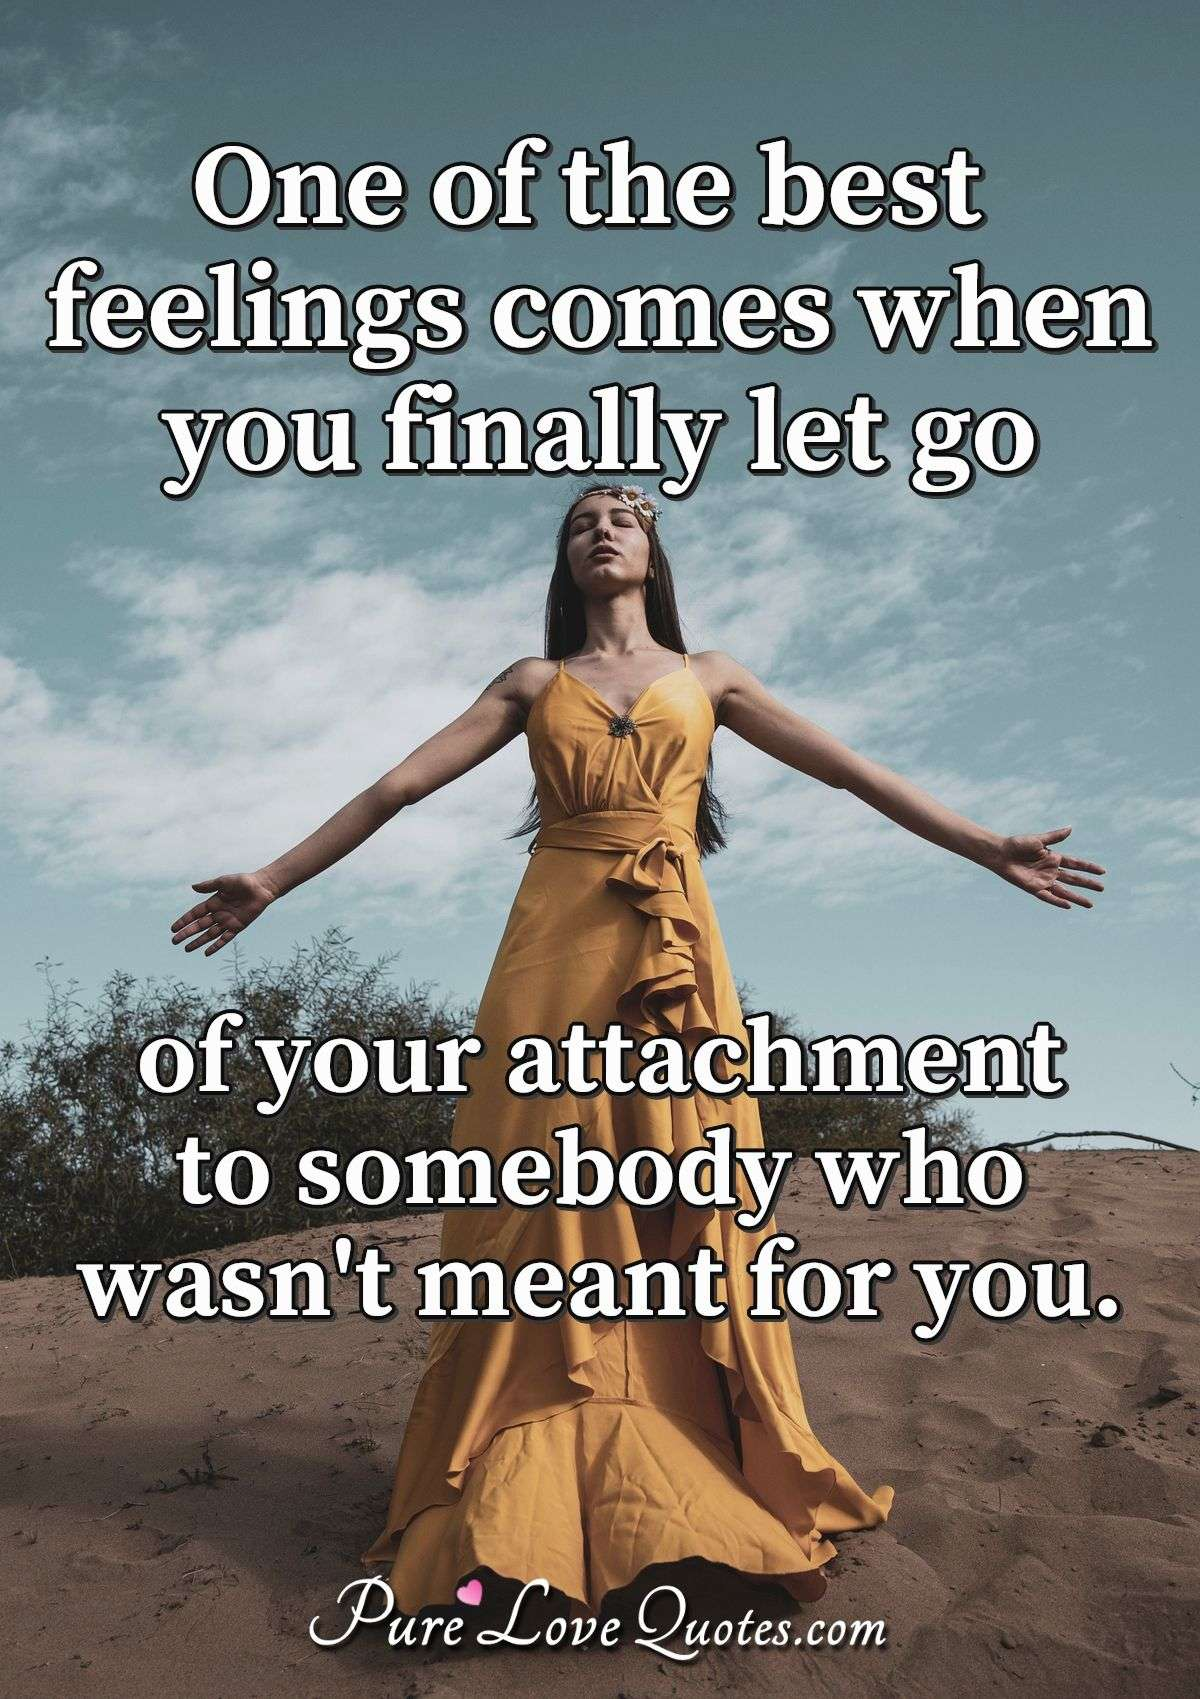 One of the best feelings comes when you finally let go of your attachment to somebody who wasn't meant for you. - Anonymous